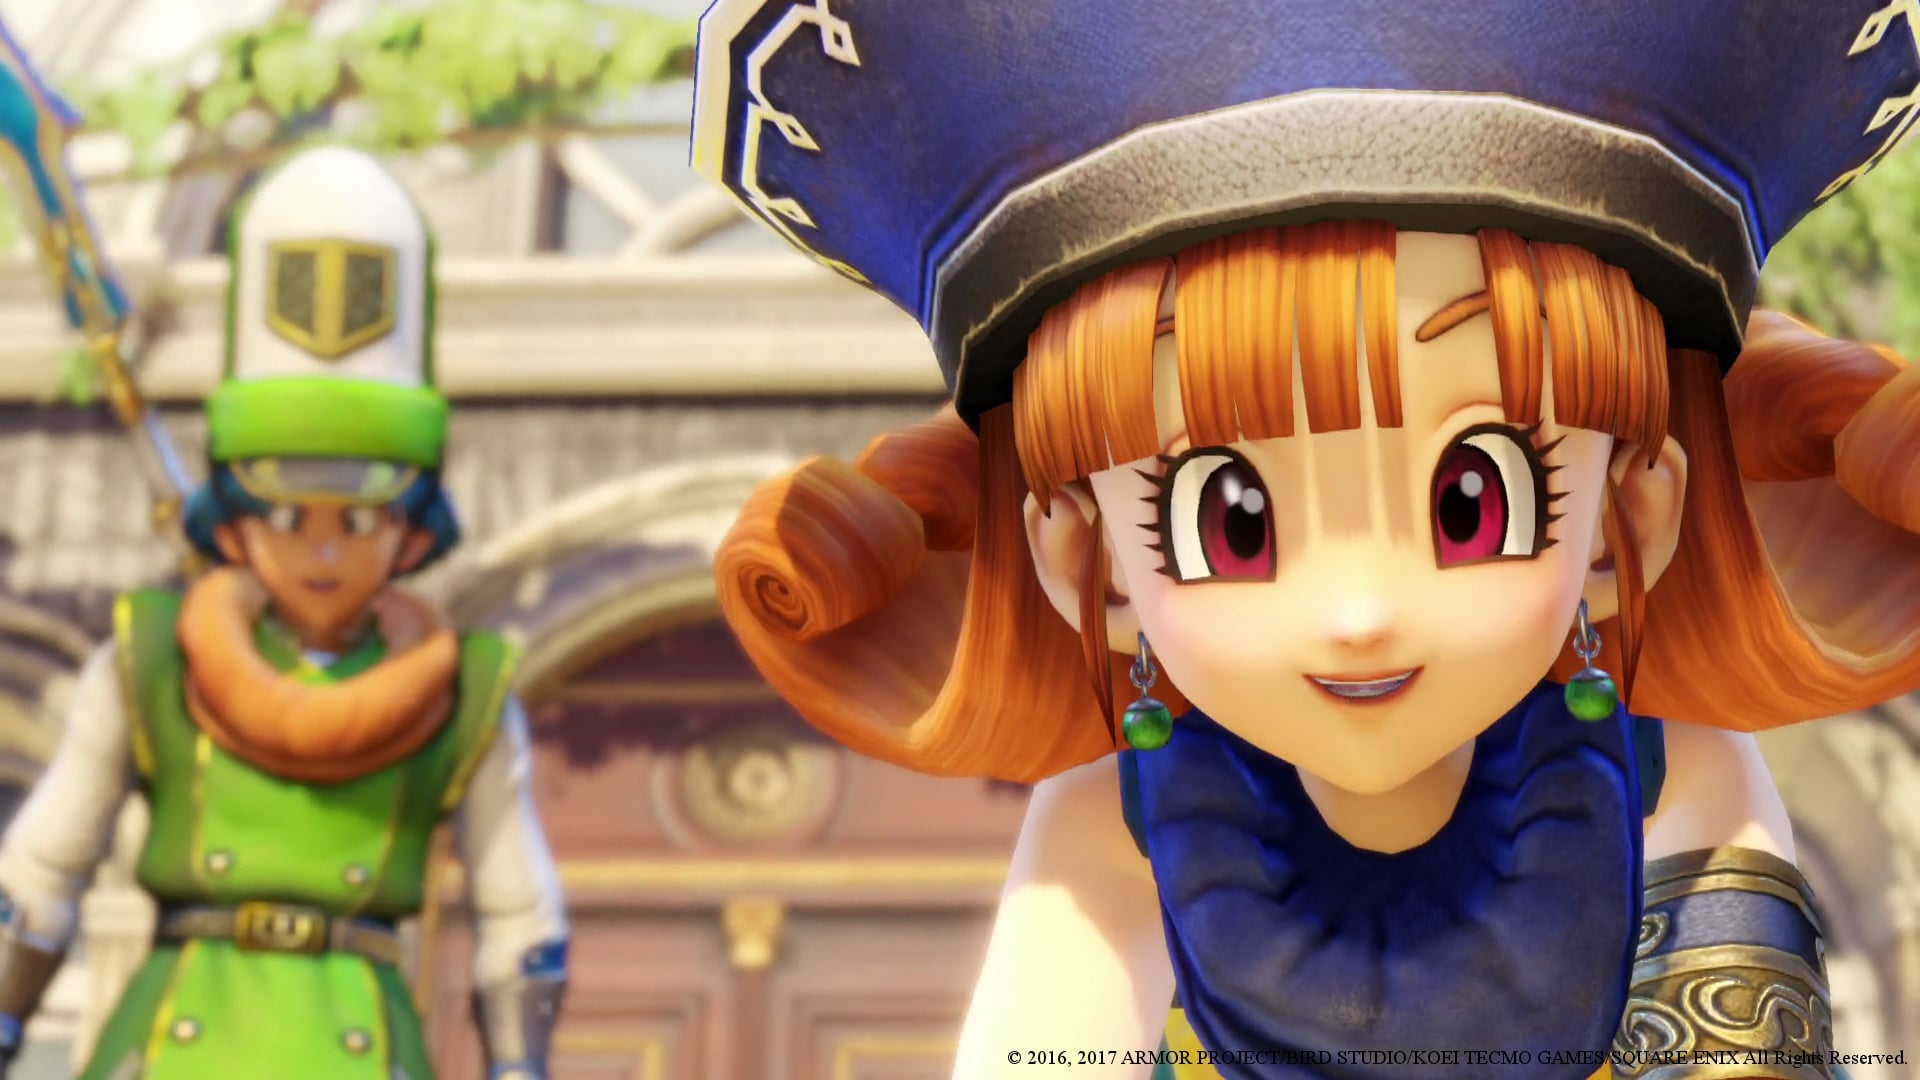 She Don't Need No Man: The Woman Warrior Archetype in Dragon Quest – DQFM S2 E37